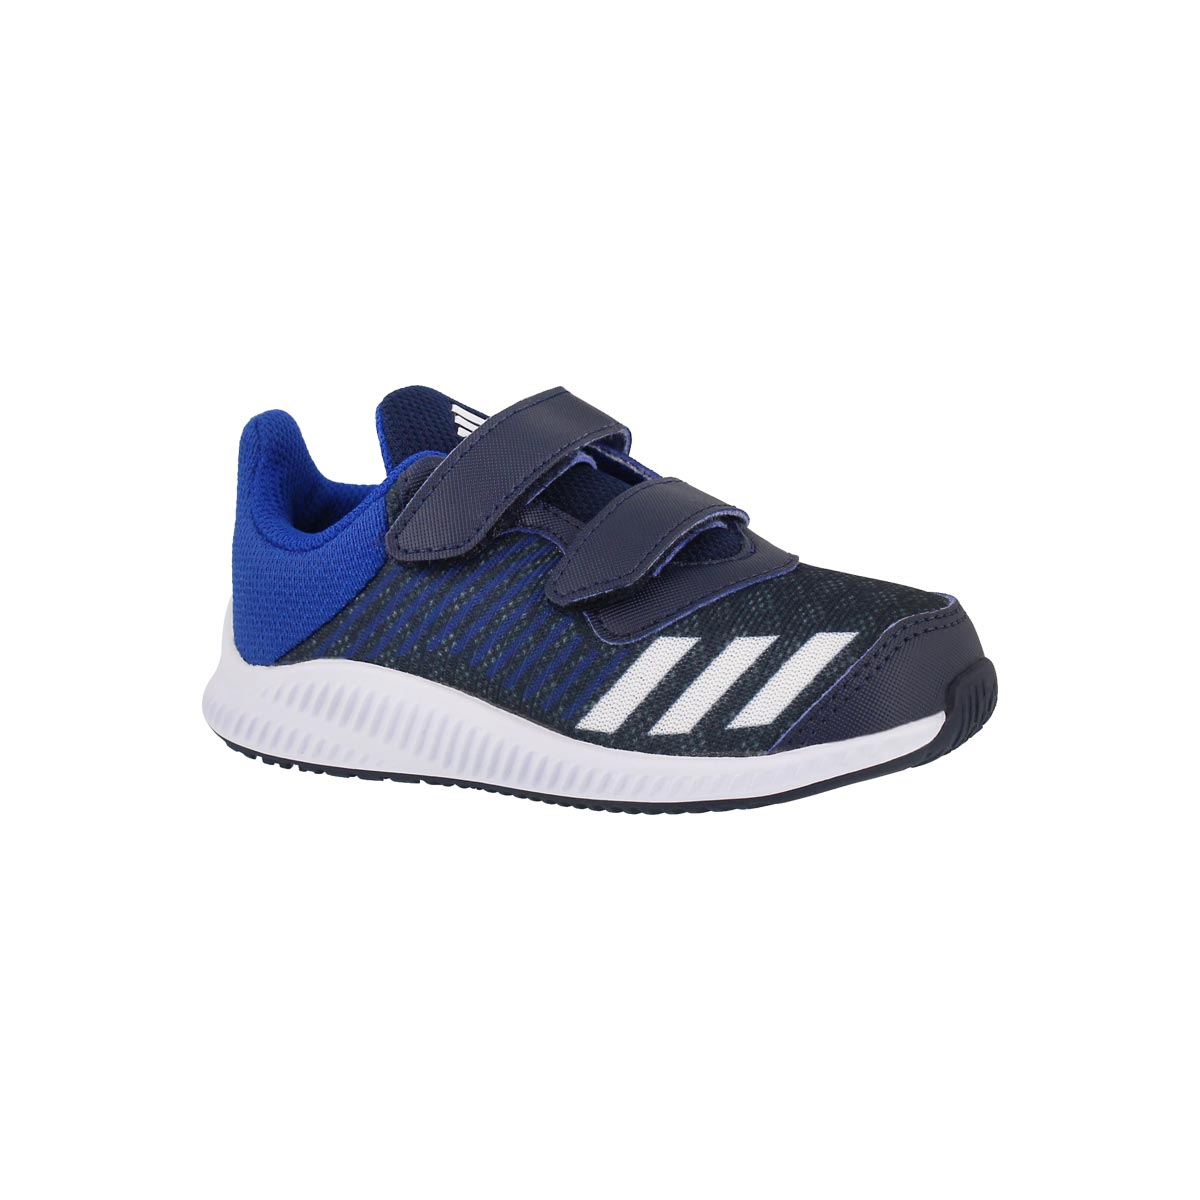 Infants' FORTAFUN EL navy/white sneakers